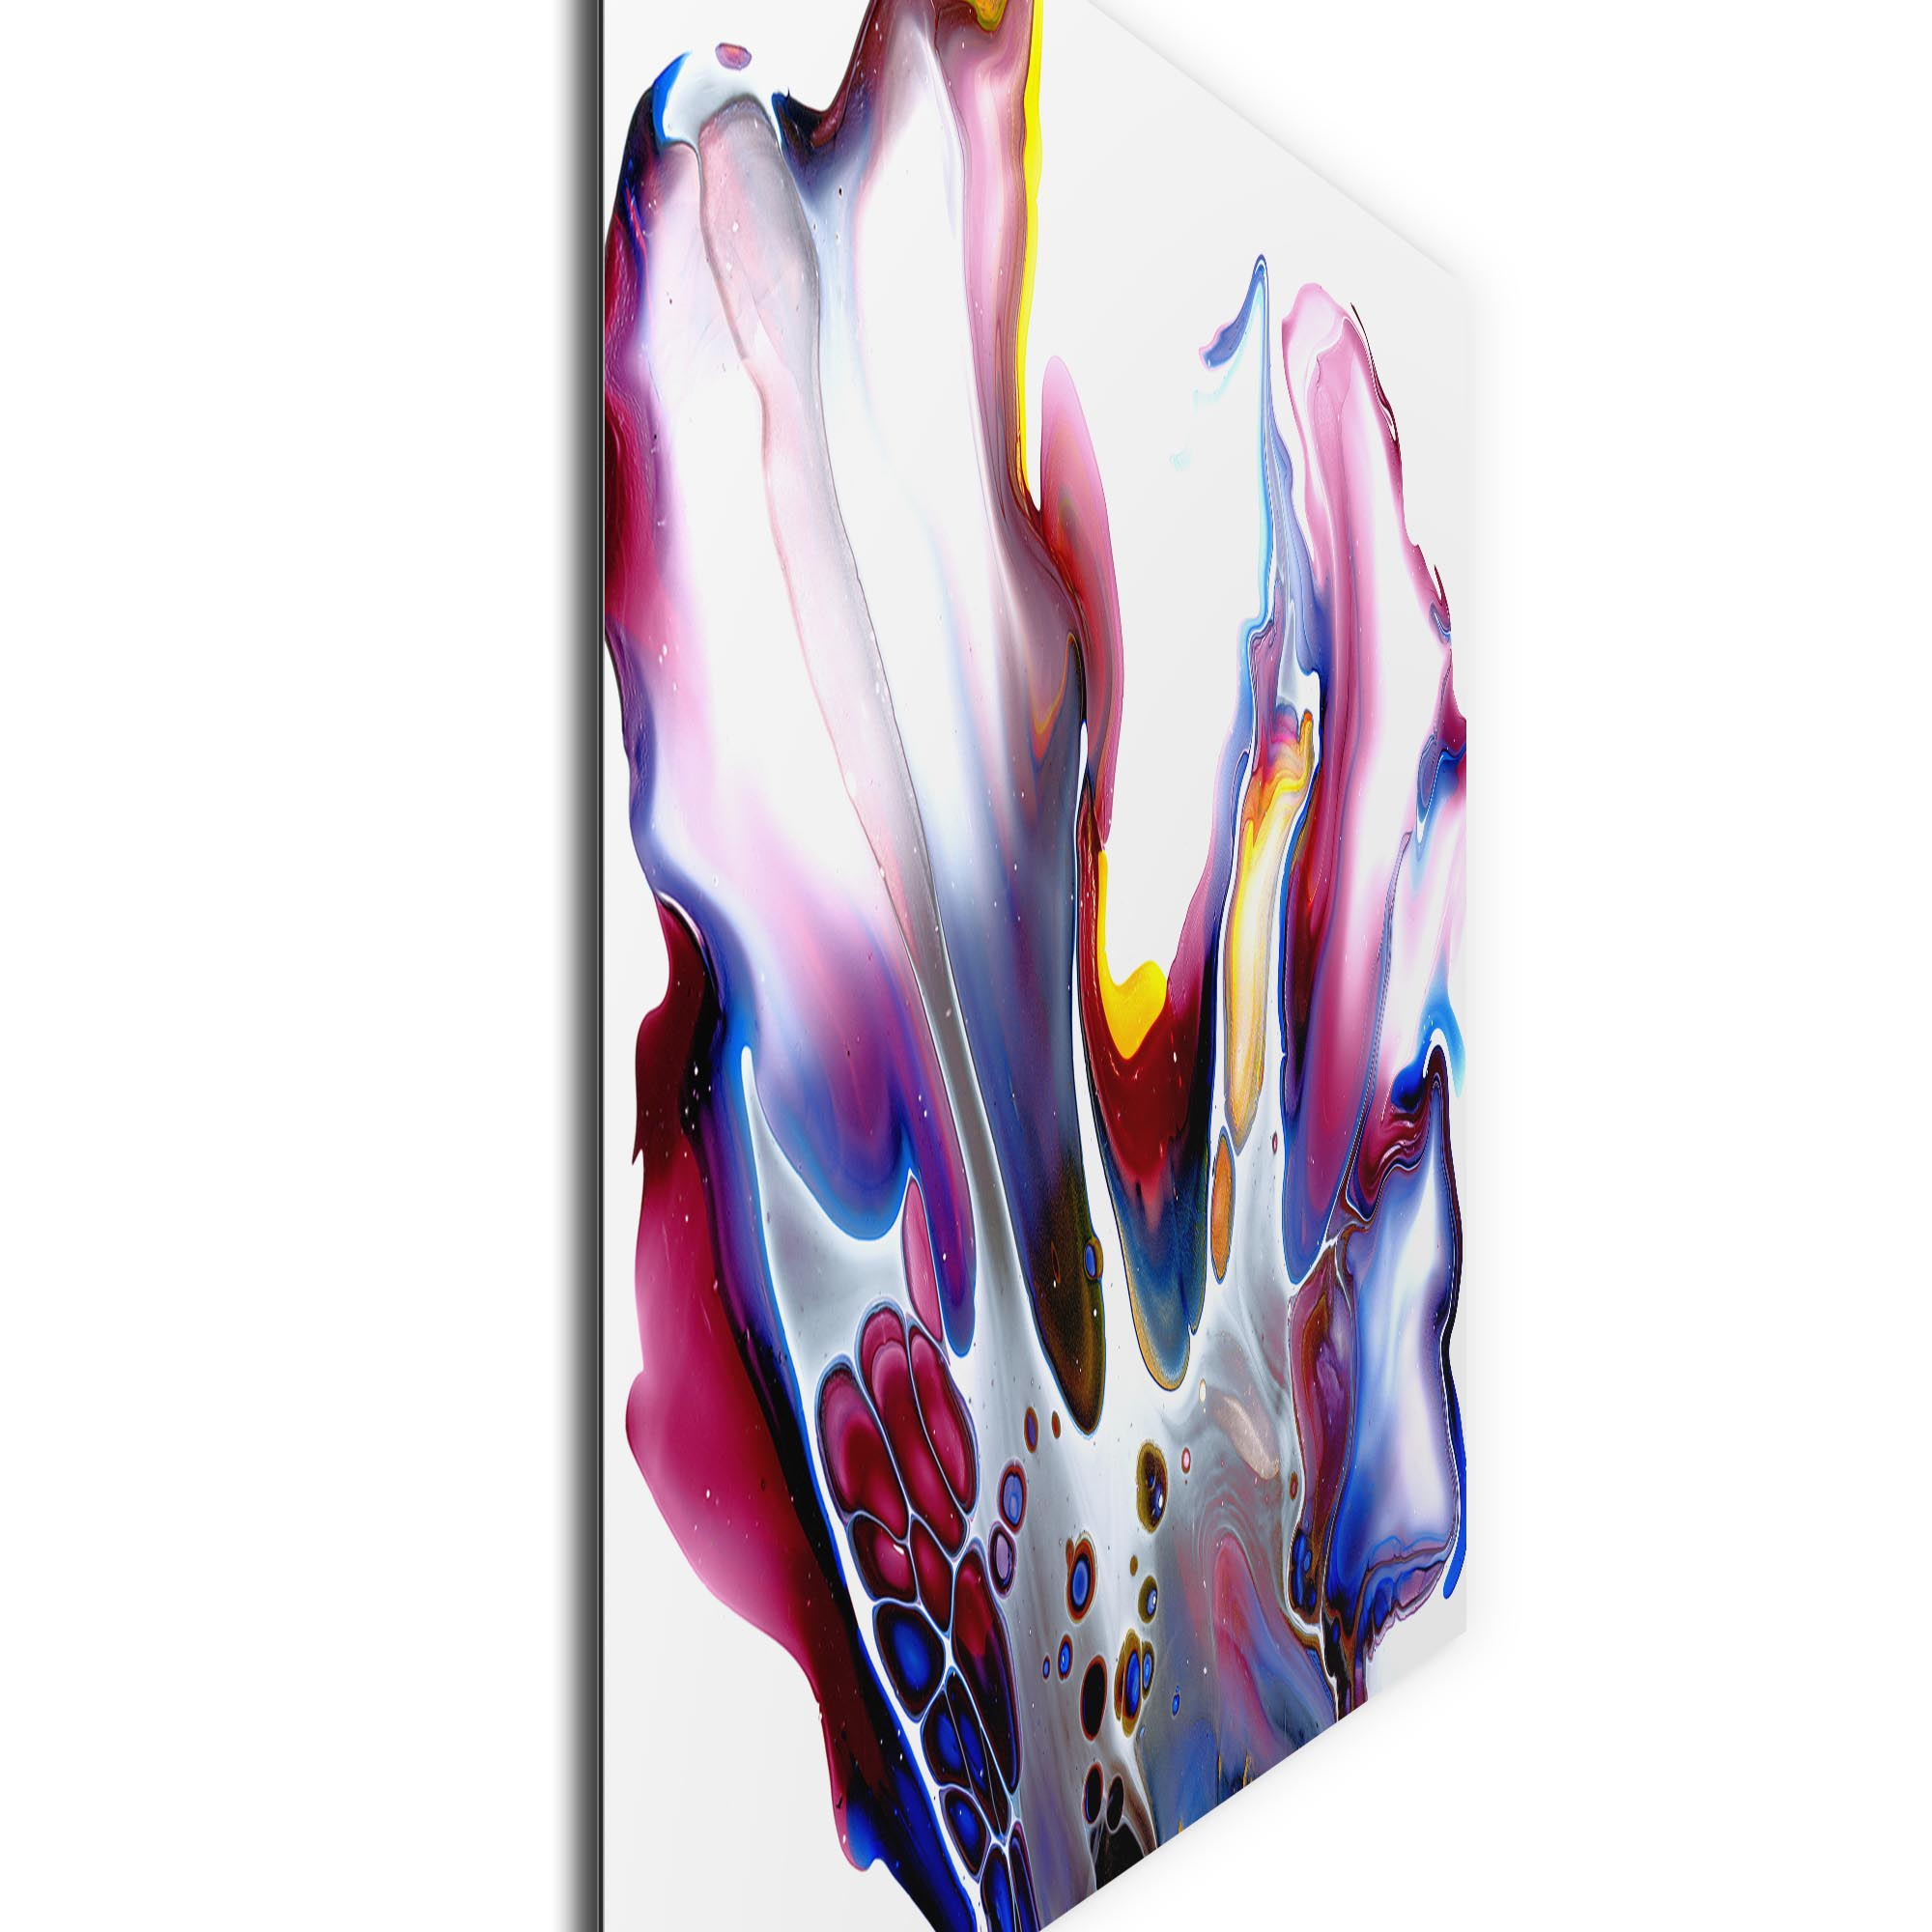 Slick by Elana Reiter - Abstract Wall Art, Modern Home Decor (32in x 24in) - Image 2